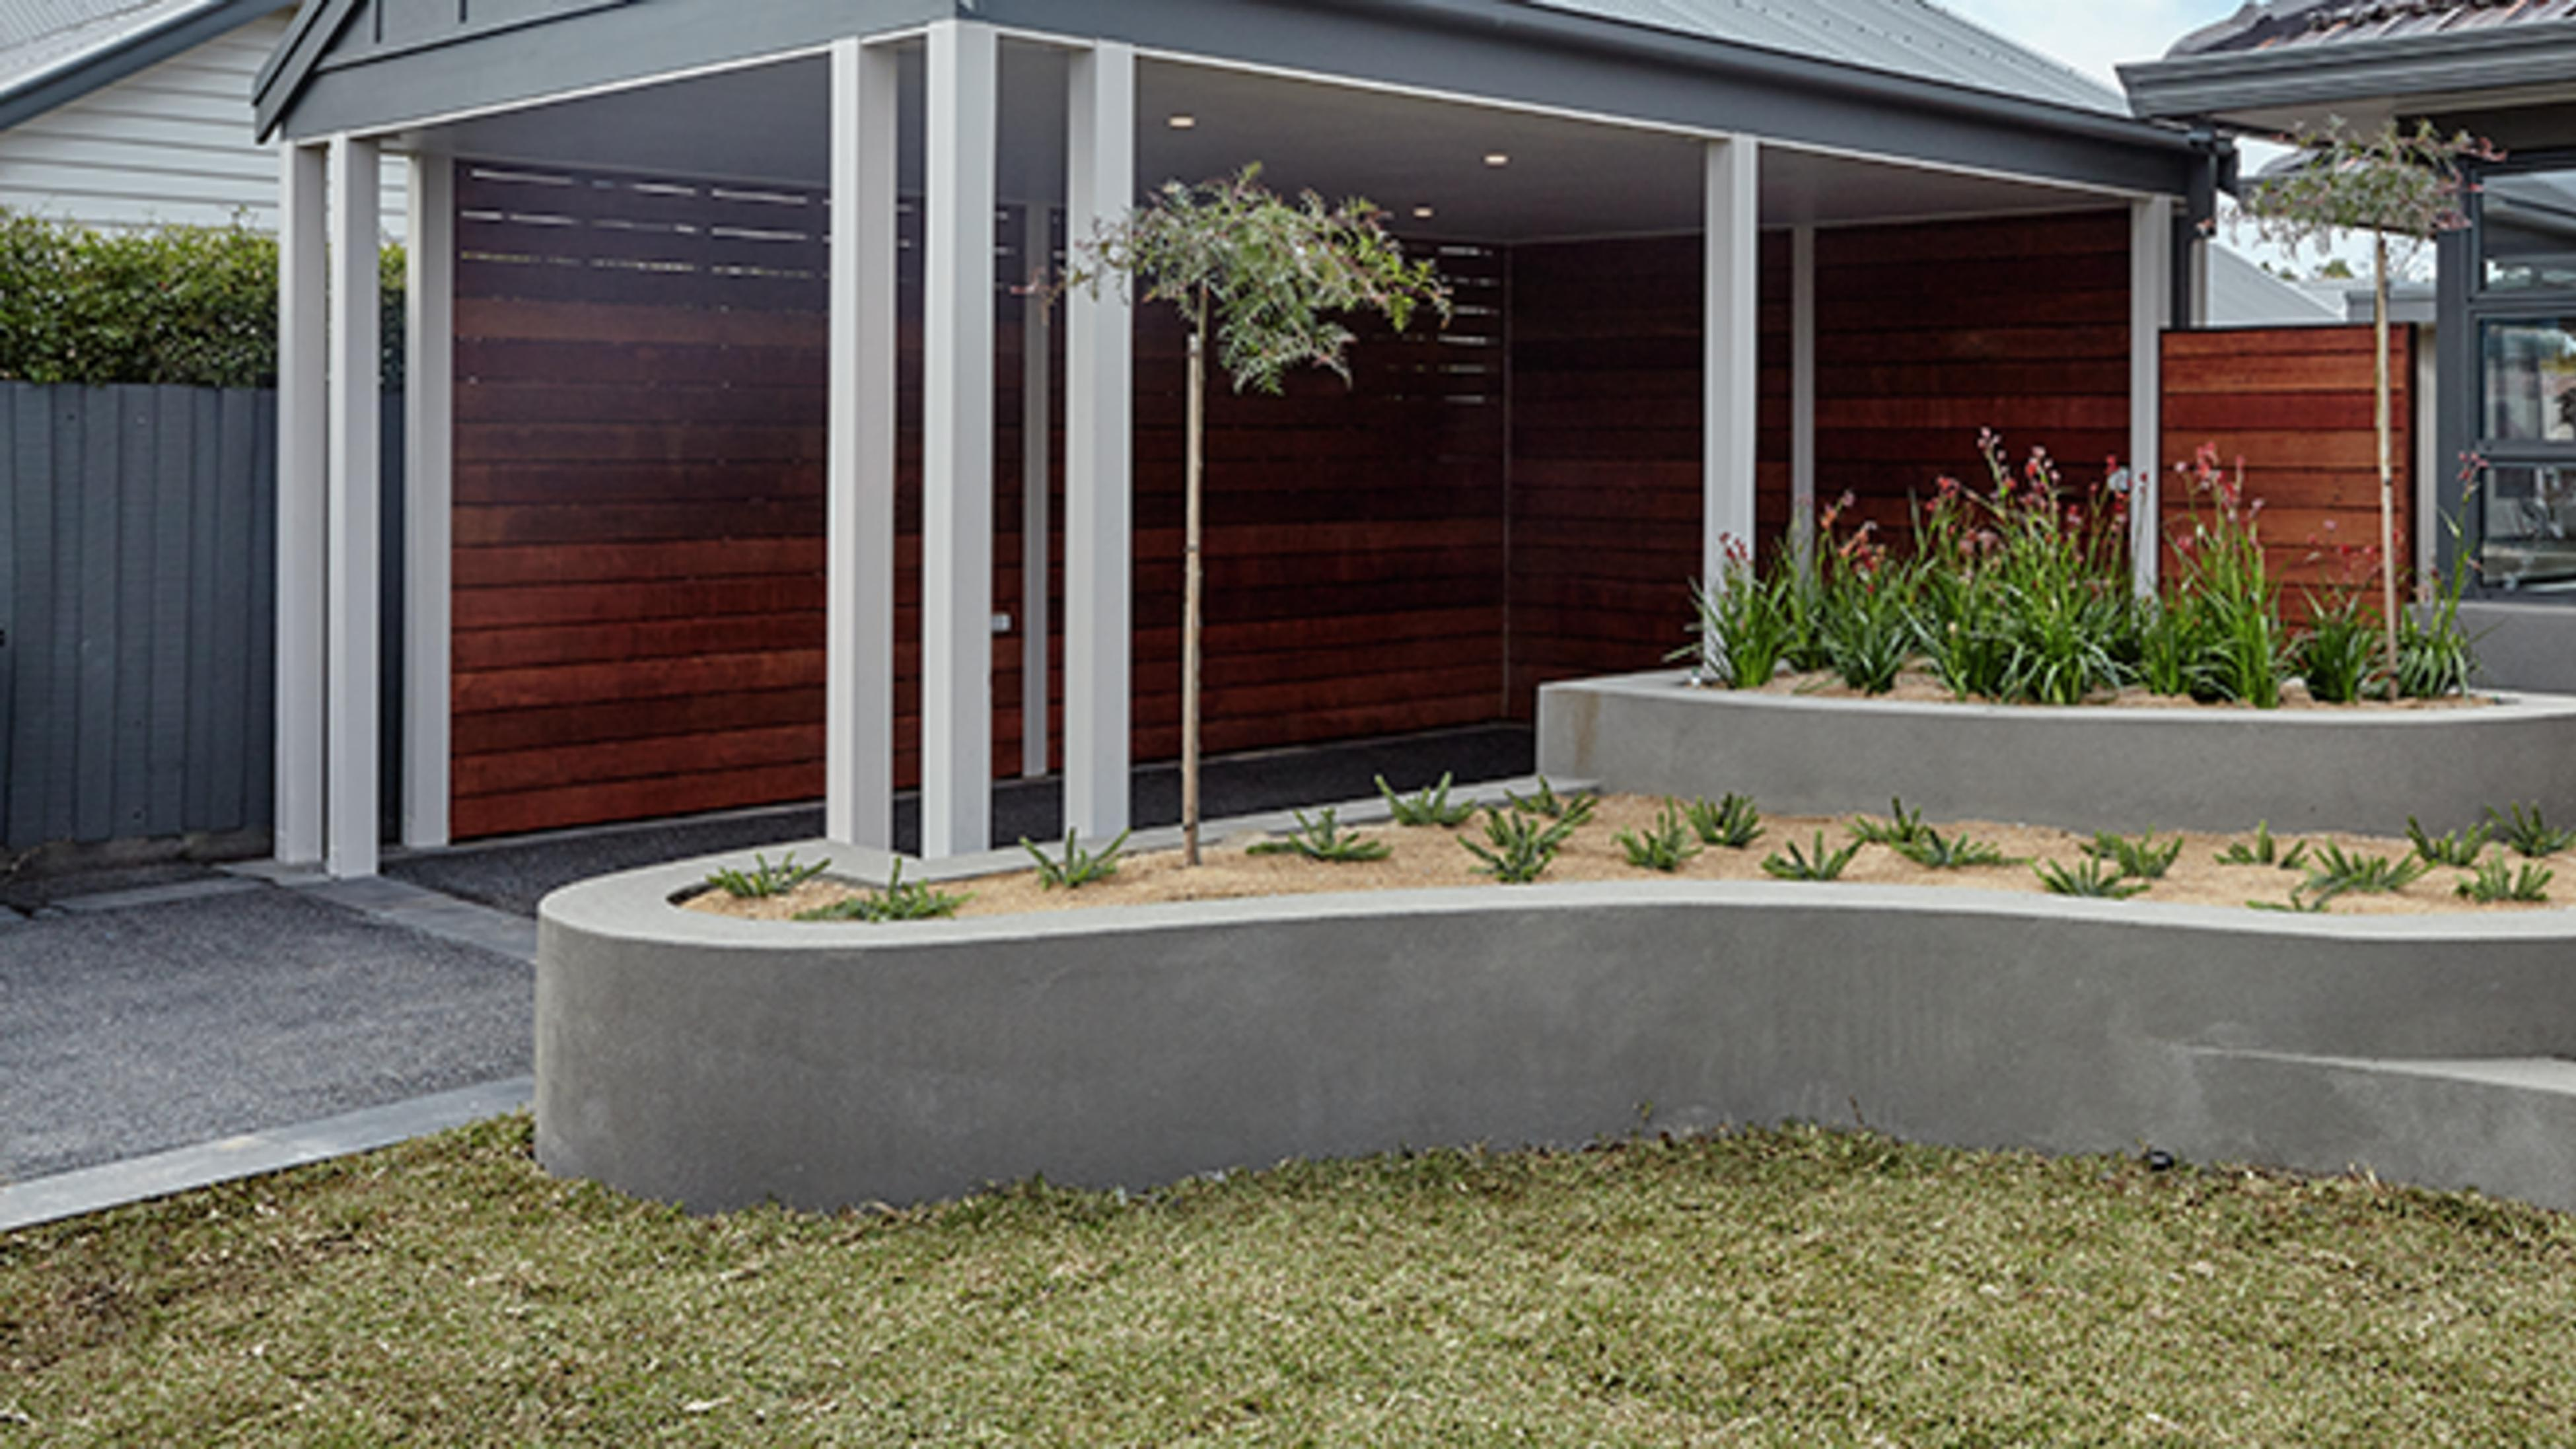 Front entry to house with raised garden beds and lawn